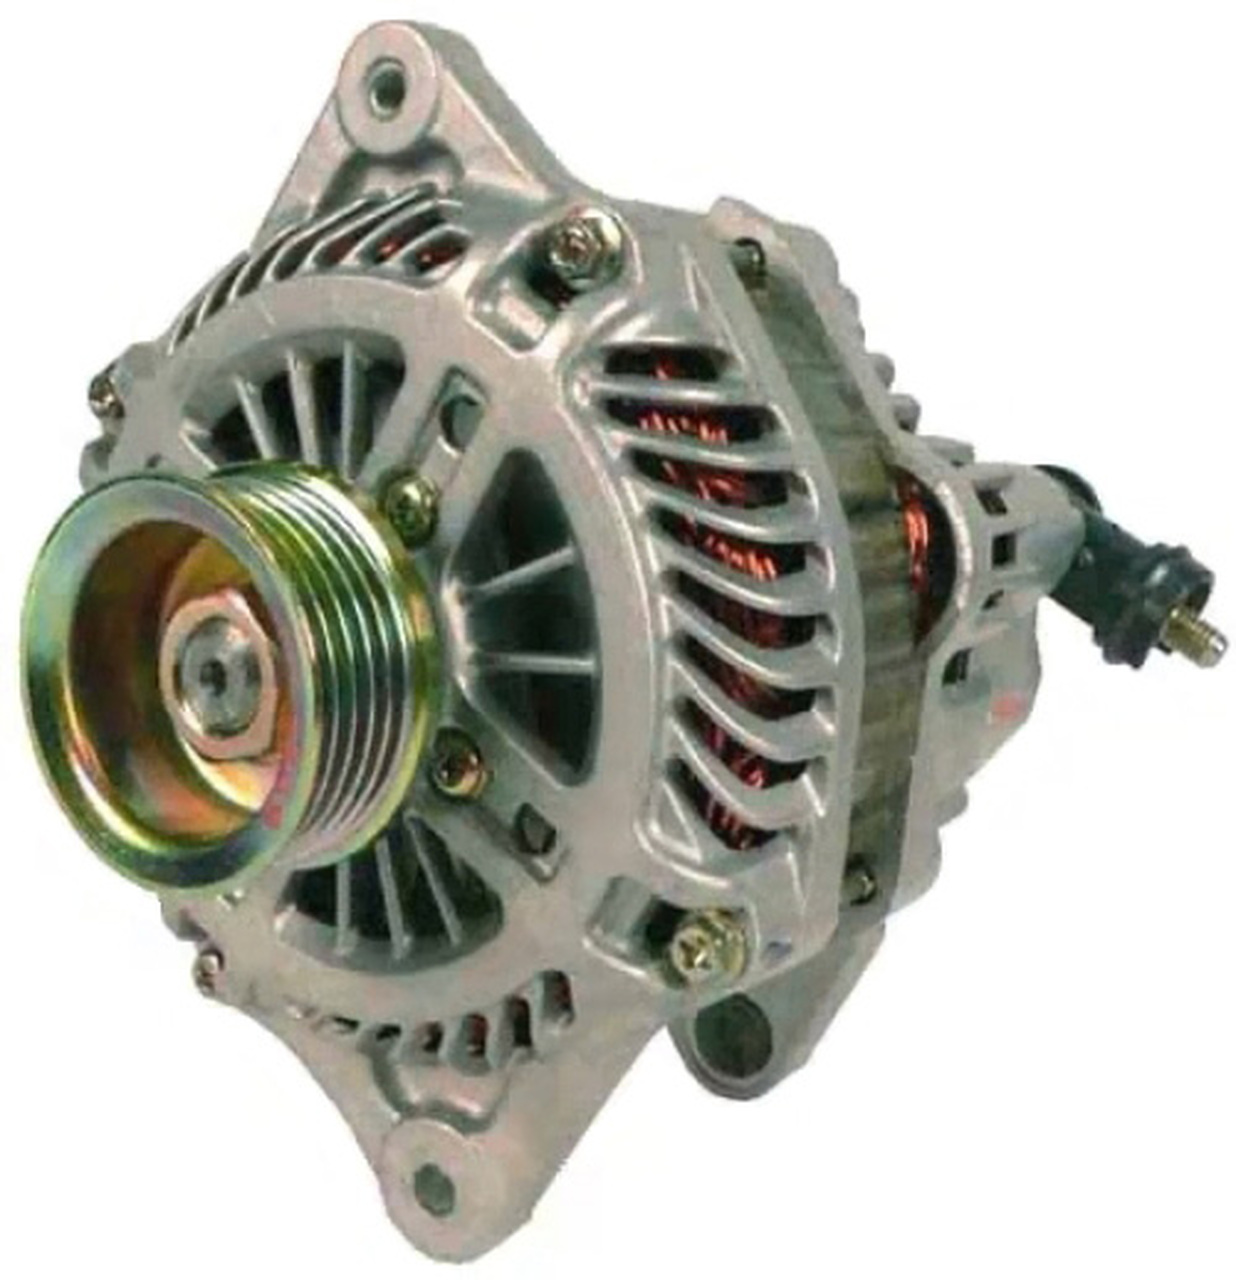 NEW ALTERNATOR for SUBARU 2.5L 2.5 LEGACY /& OUTBACK 2005 2006 2007 2008 2009